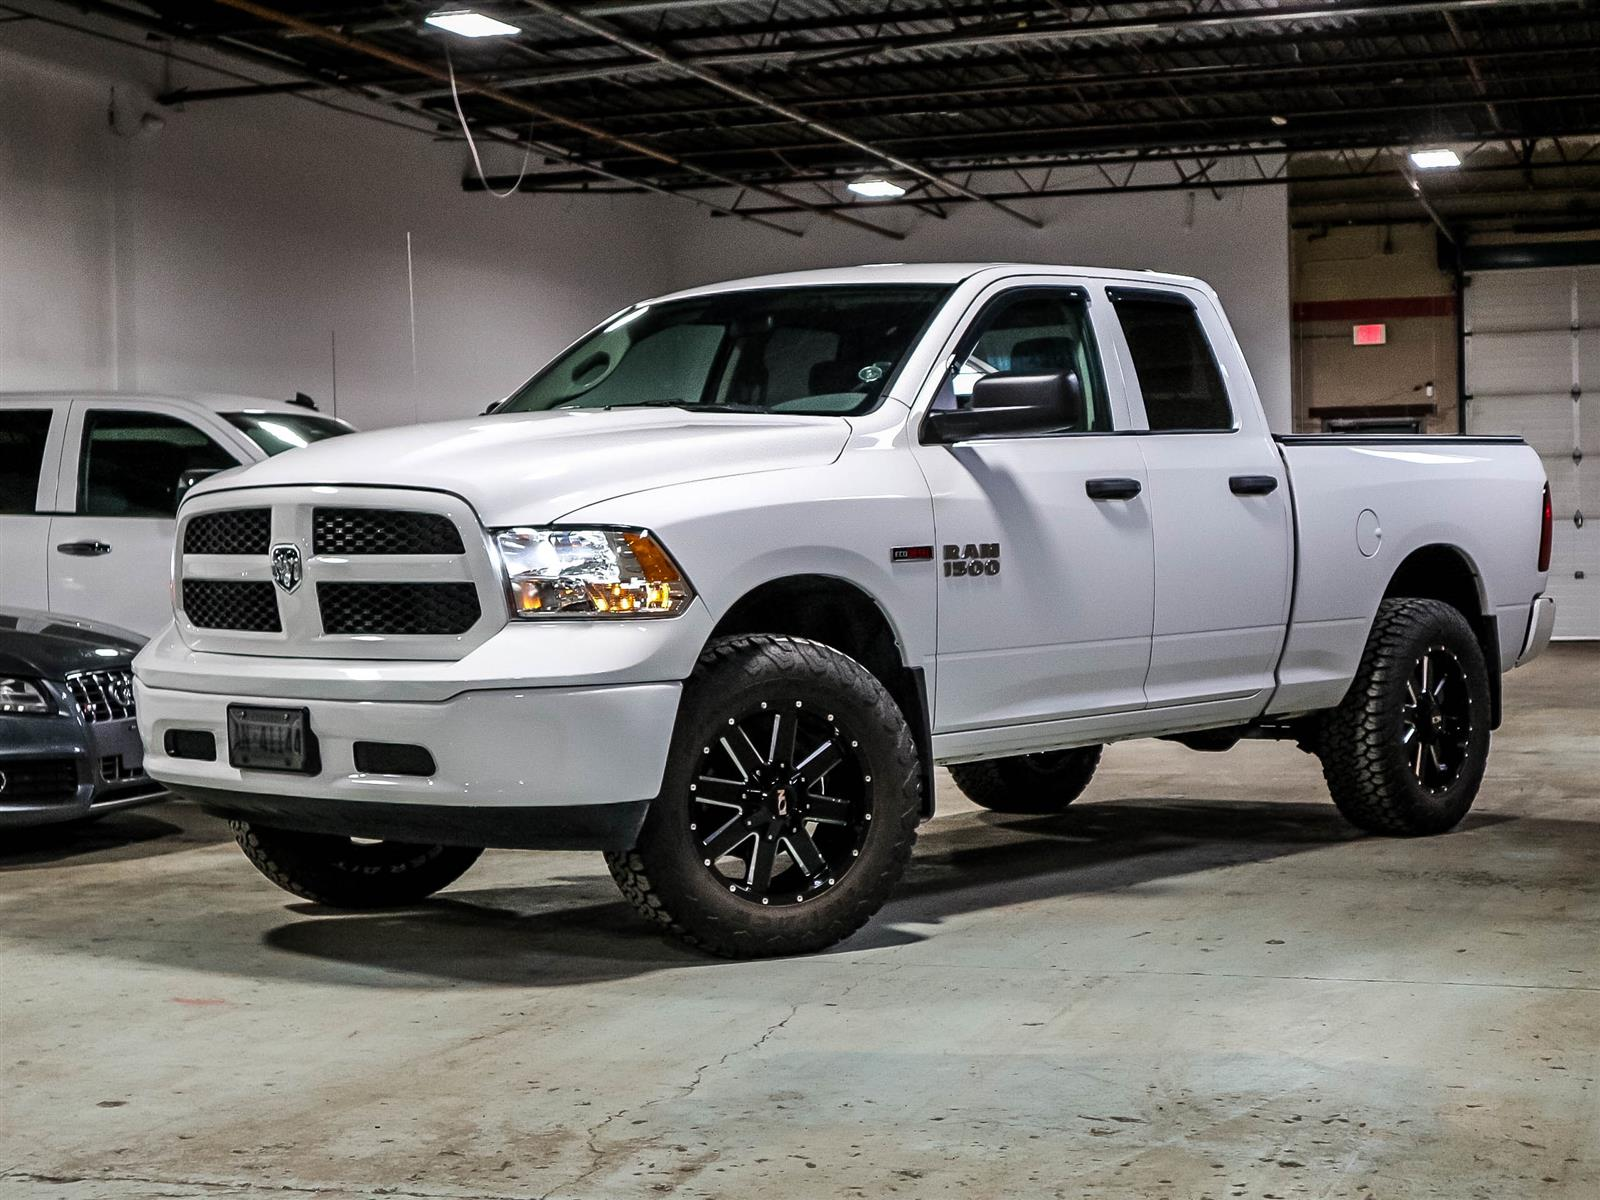 2018 Dodge Ram 1500 For Sale In Toronto On 1705350237 The Car Guide